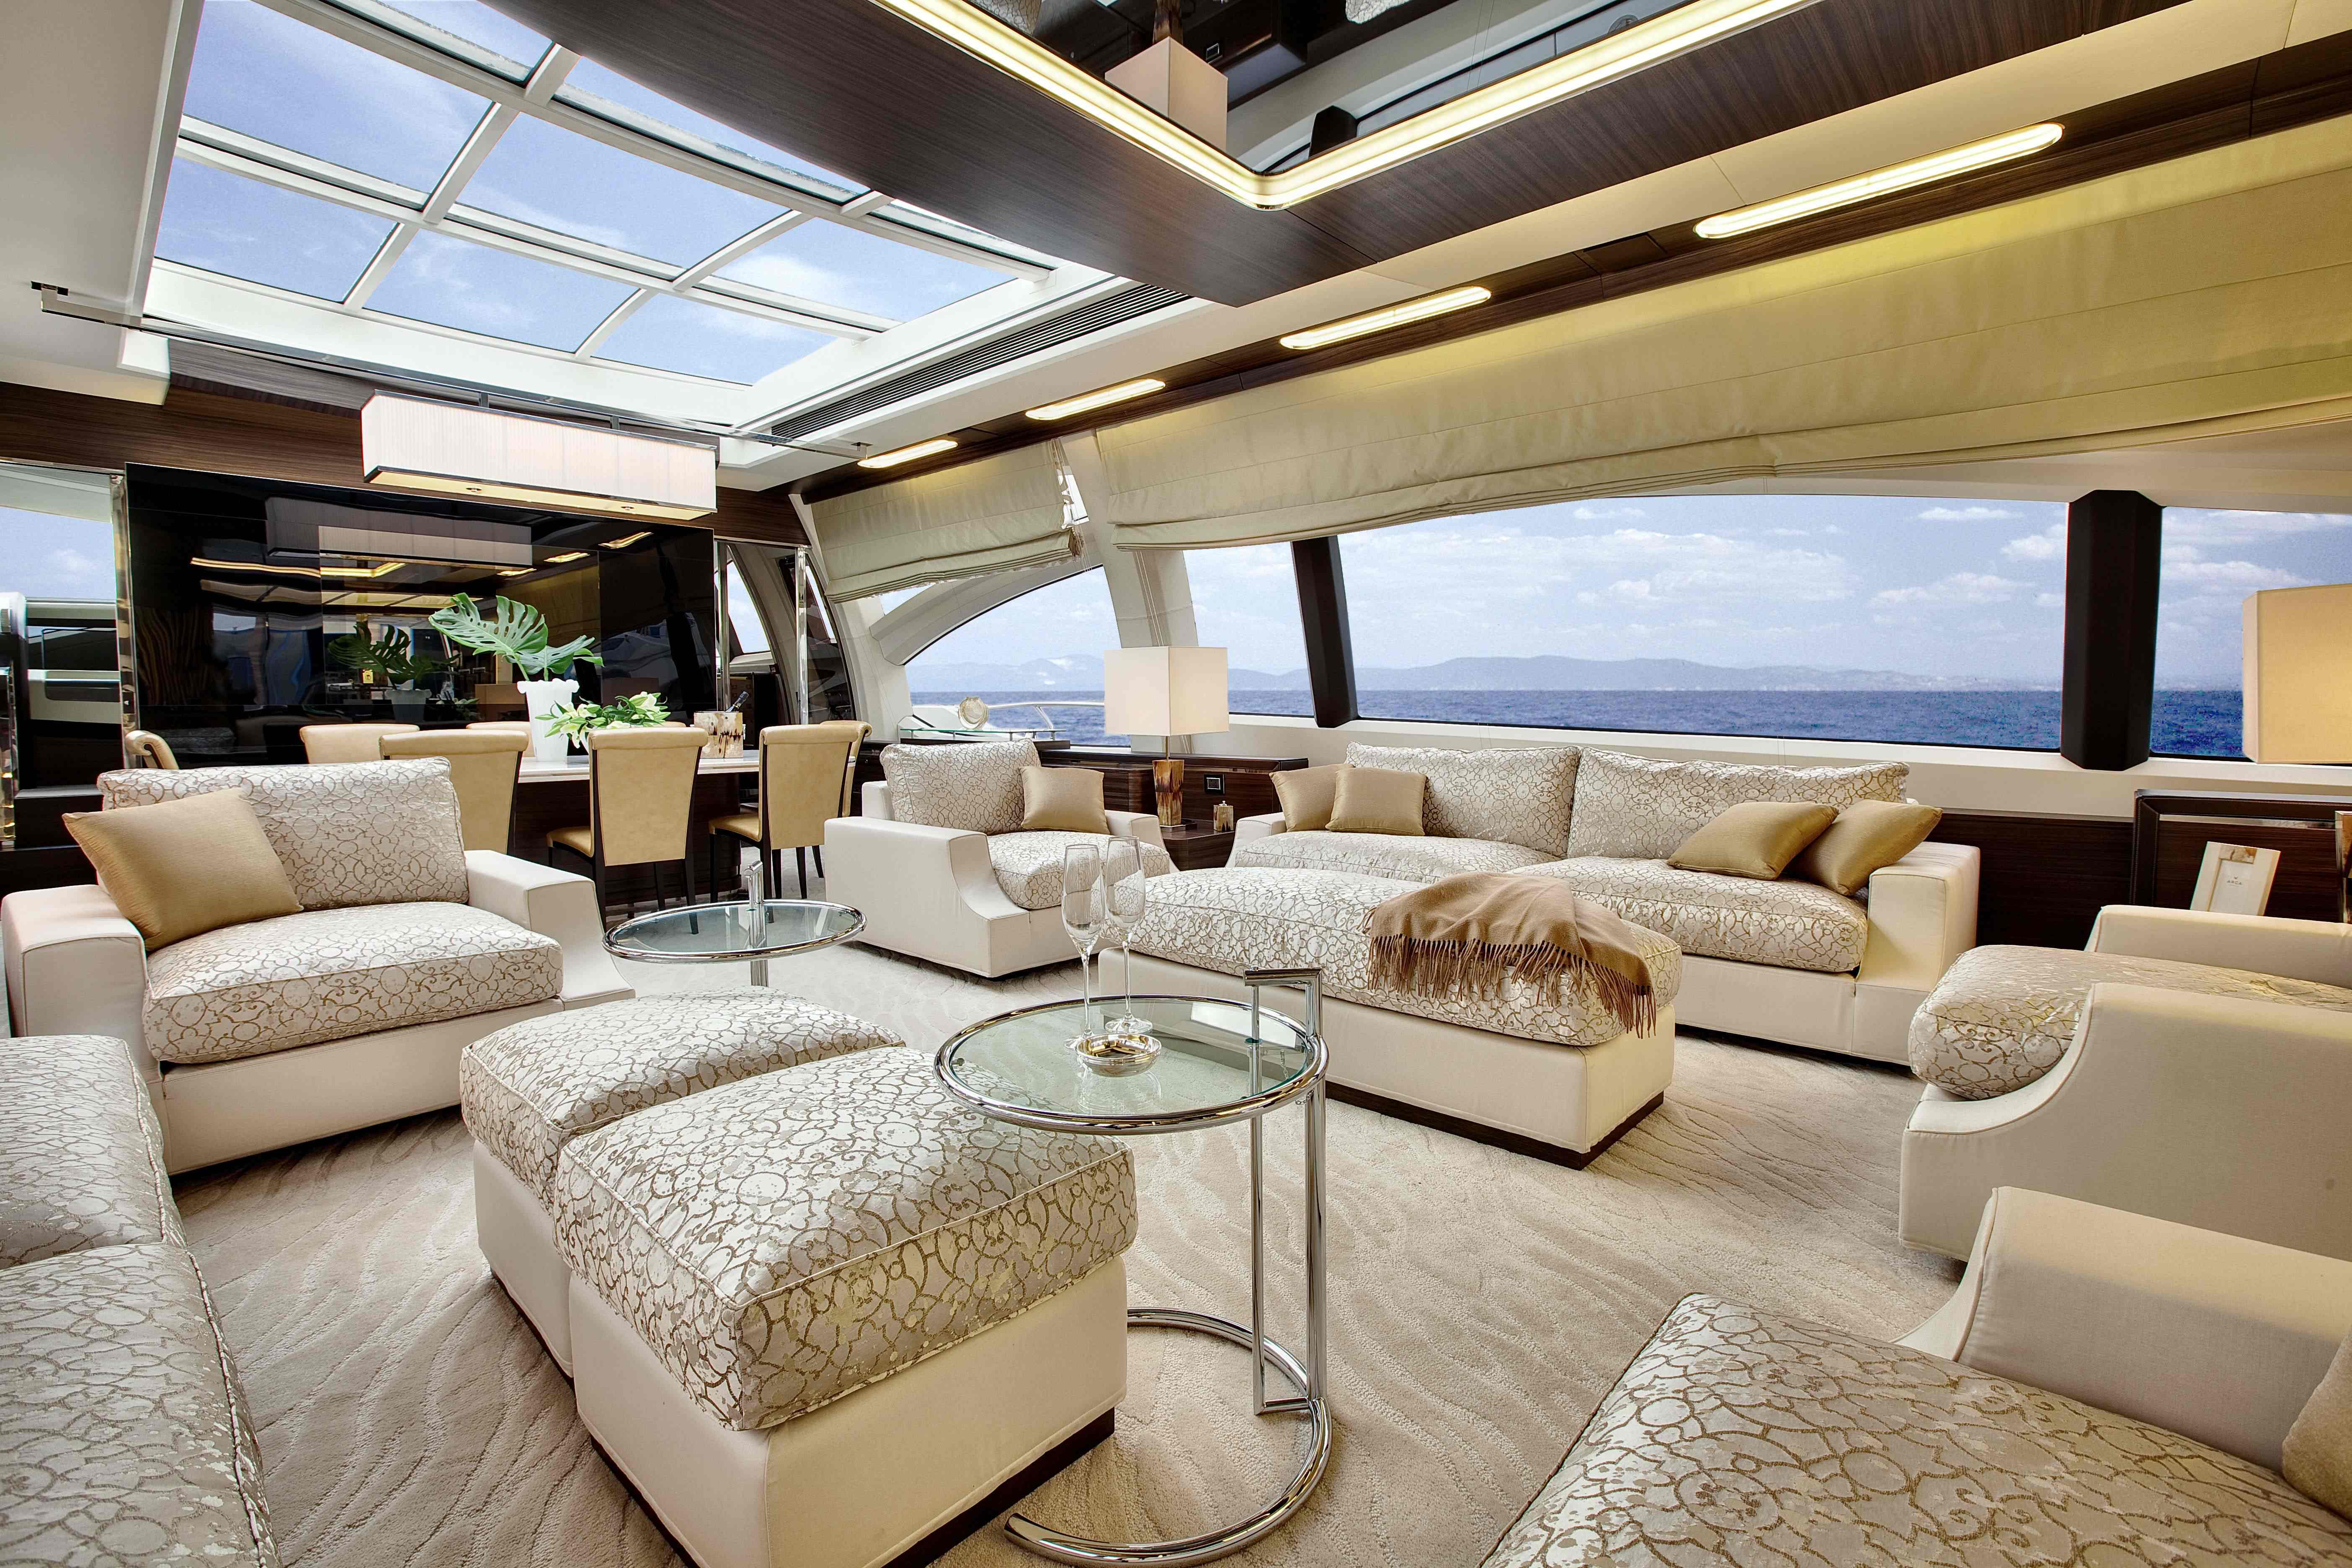 jupiter-cleaning-boats-yacht-carpet-mcconnell-brothers.jpg.jpg